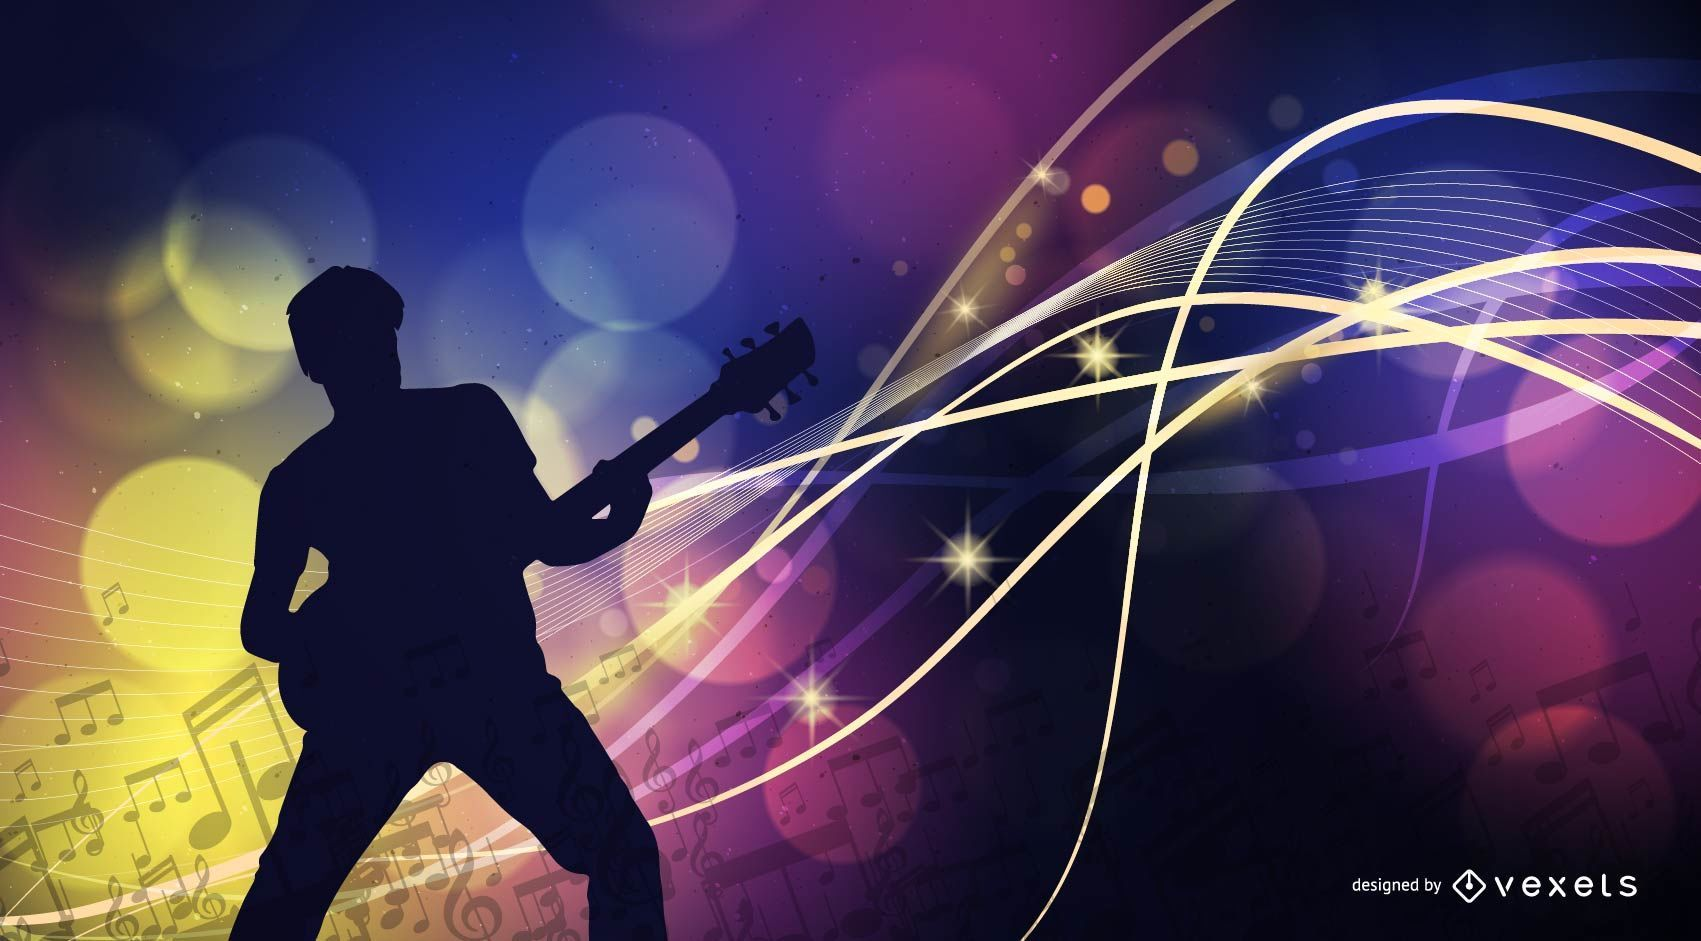 Cool Musical Poster with Ray Lights